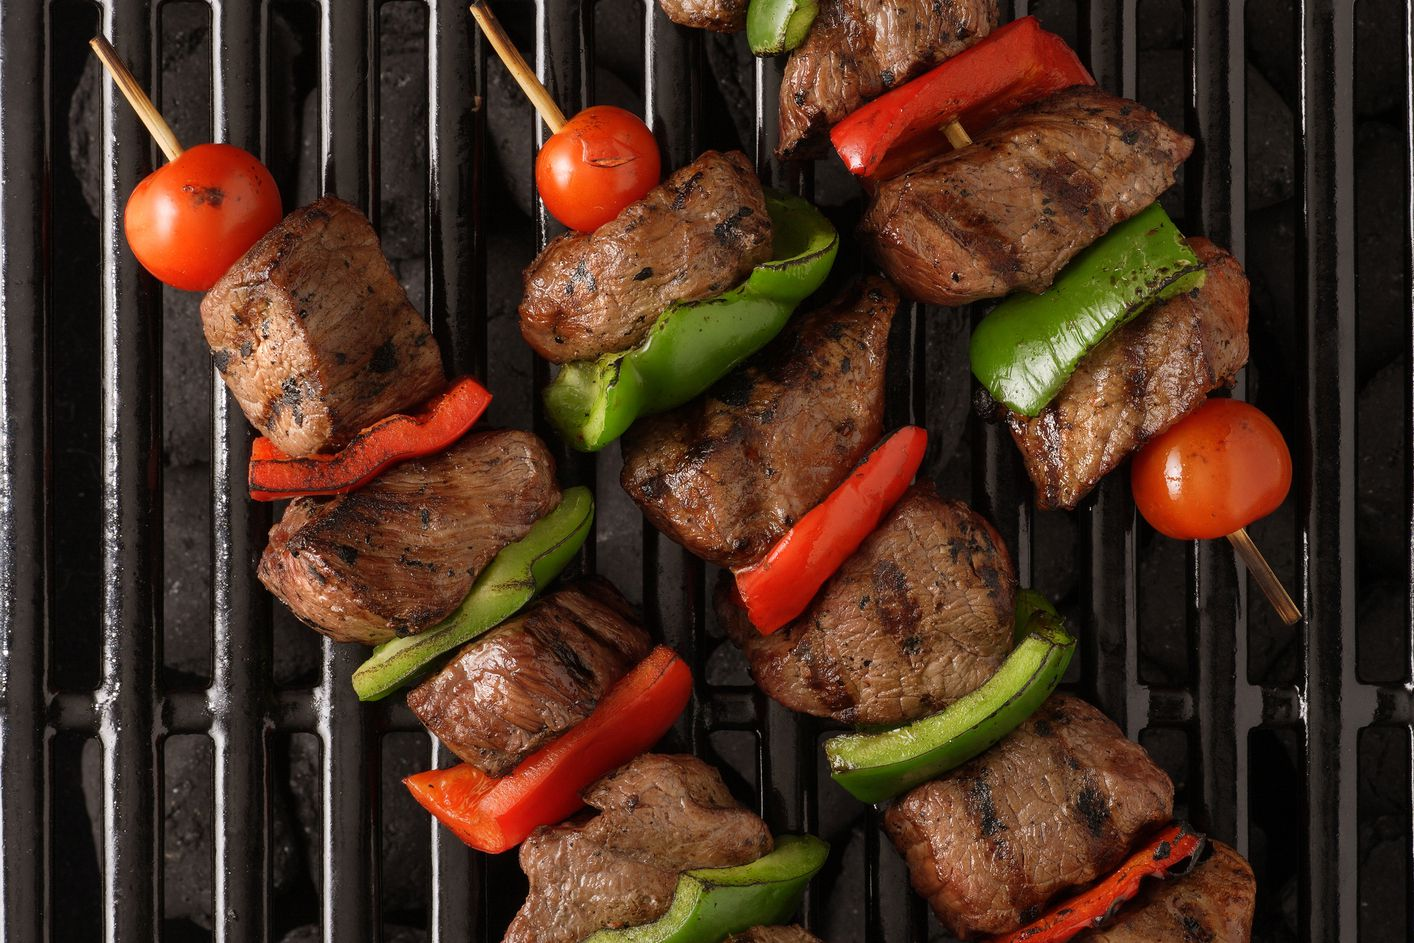 What Is The Best Type Of Meat For Making Shish Kebabs